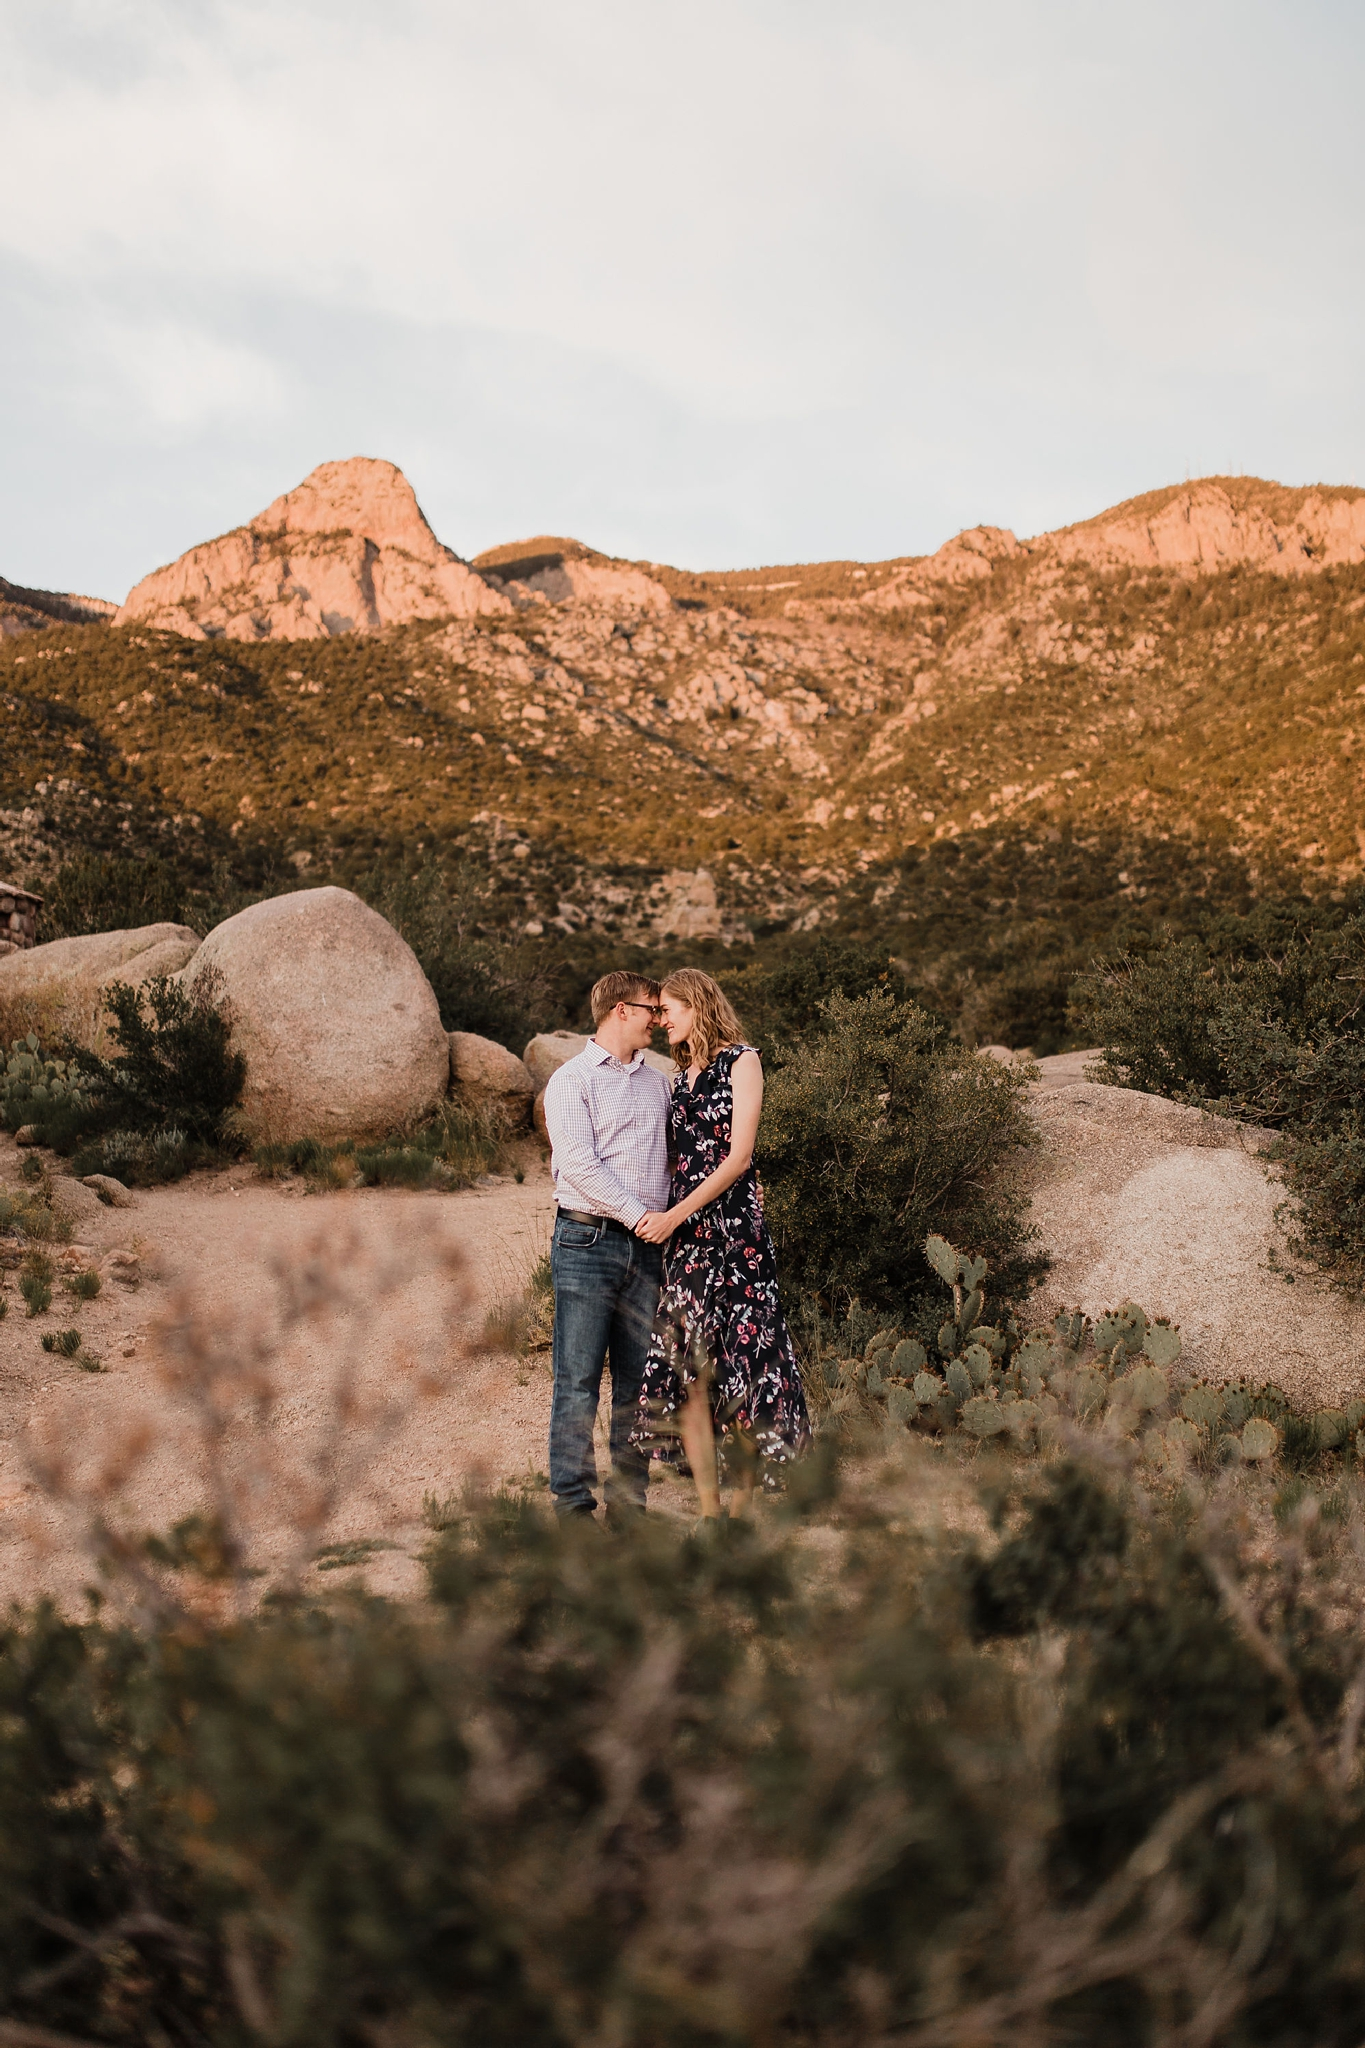 Alicia+lucia+photography+-+albuquerque+wedding+photographer+-+santa+fe+wedding+photography+-+new+mexico+wedding+photographer+-+new+mexico+wedding+-+new+mexico+engagement+-+mountain+engagement+-+casa+perea+wedding_0017.jpg